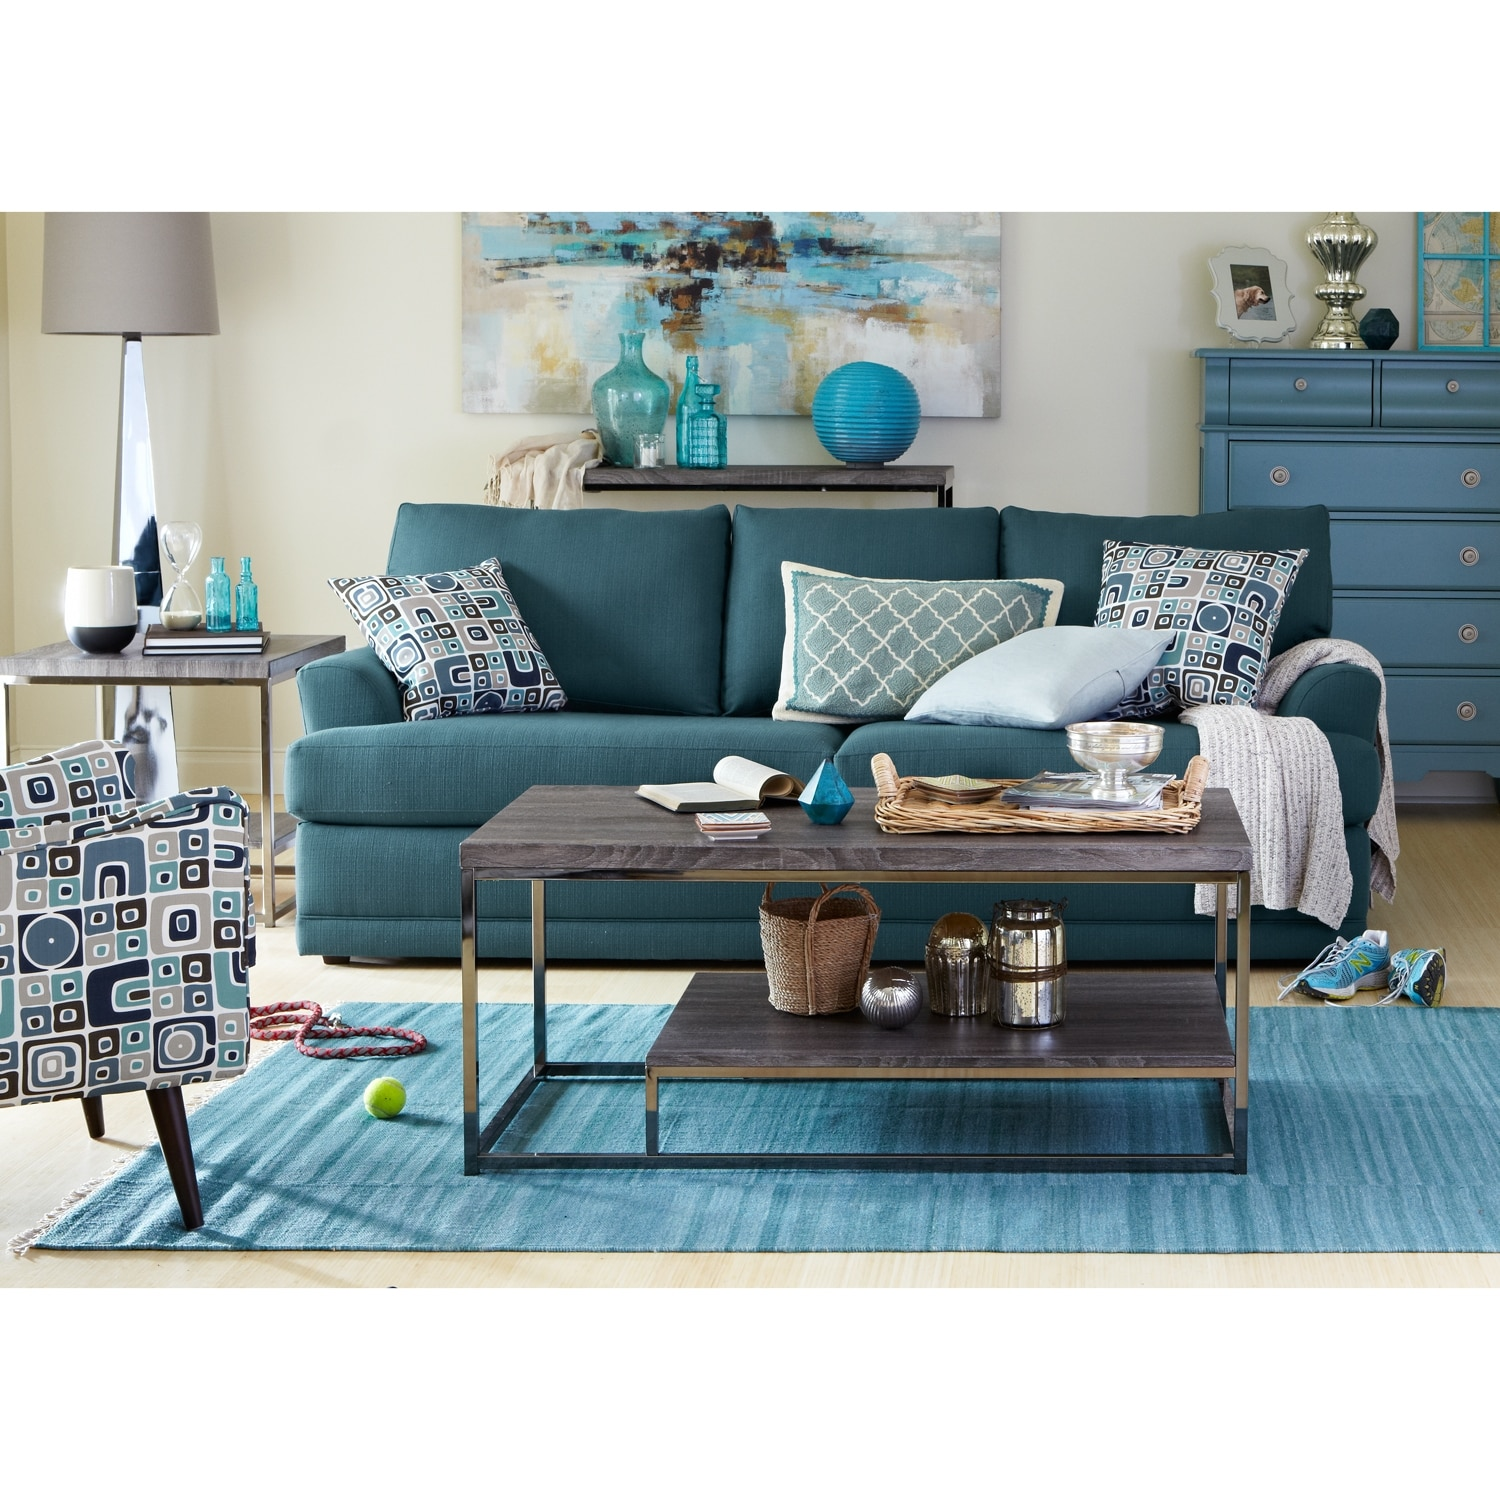 Calamar teal upholstery accent chair for Teal accent chairs in living room